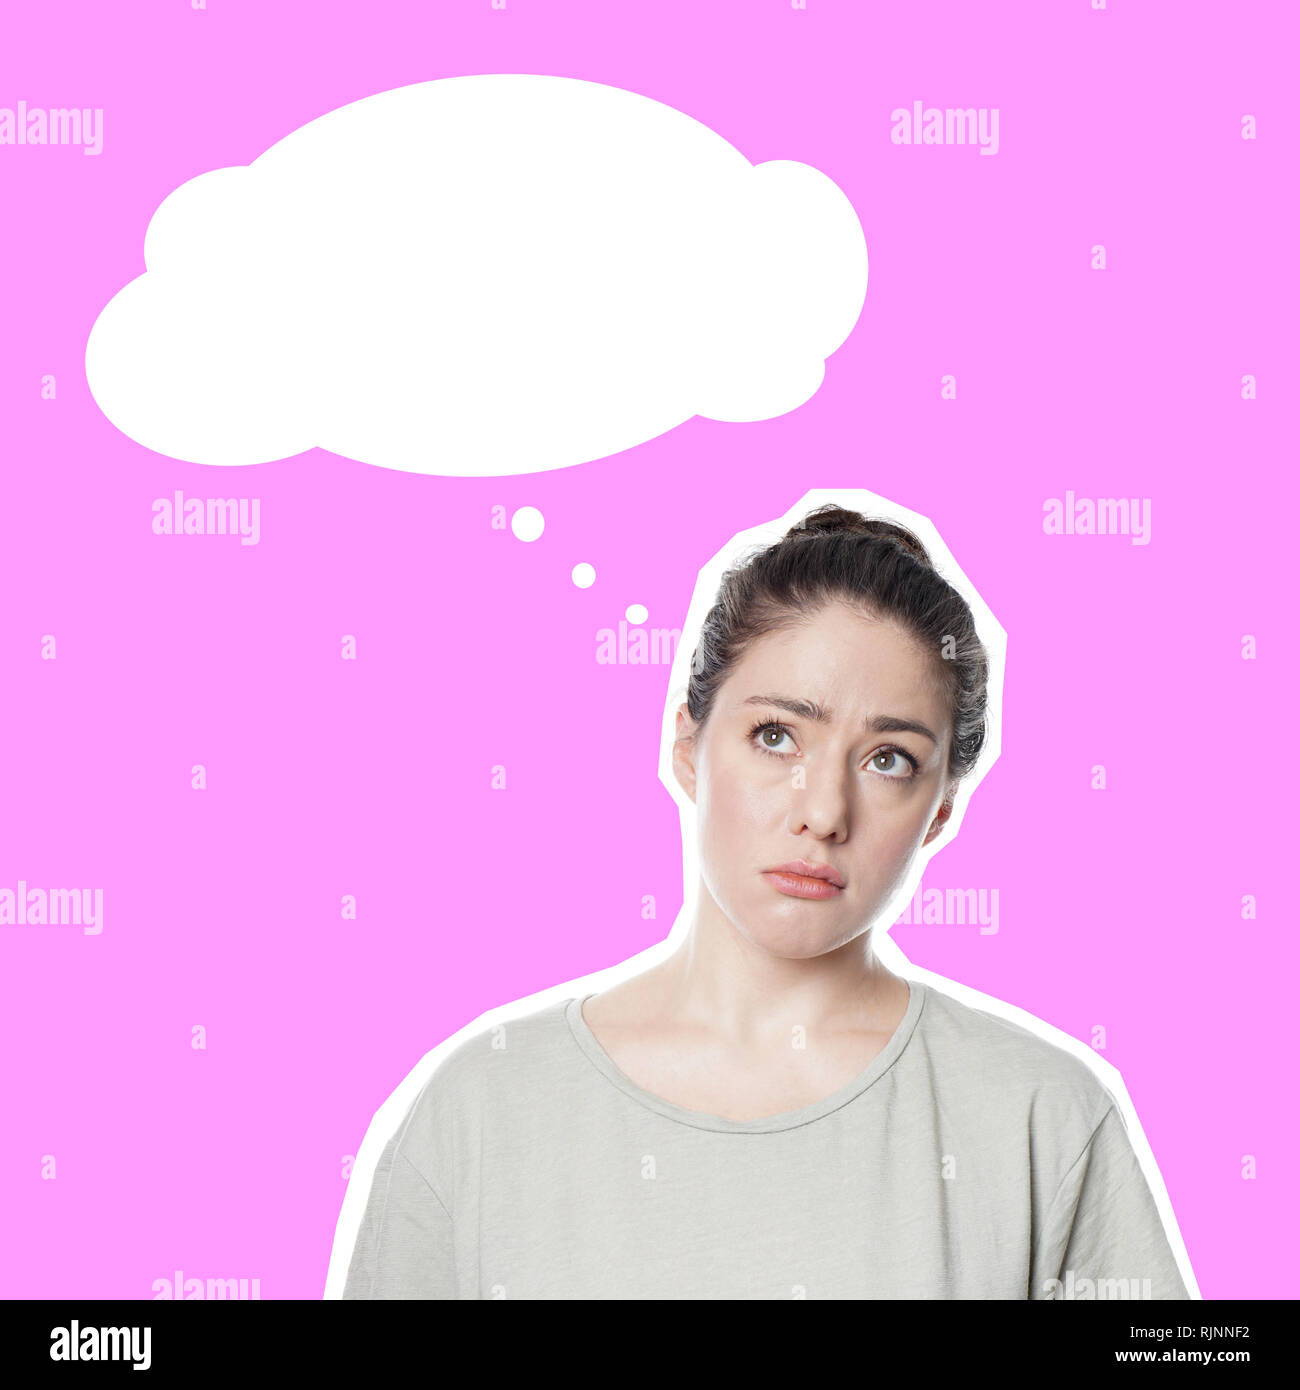 worried thoughtful young woman with concerned look on her face contemplating idea or problem - comic style cut out on pink background - empty thought bubble with copy space. - Stock Image